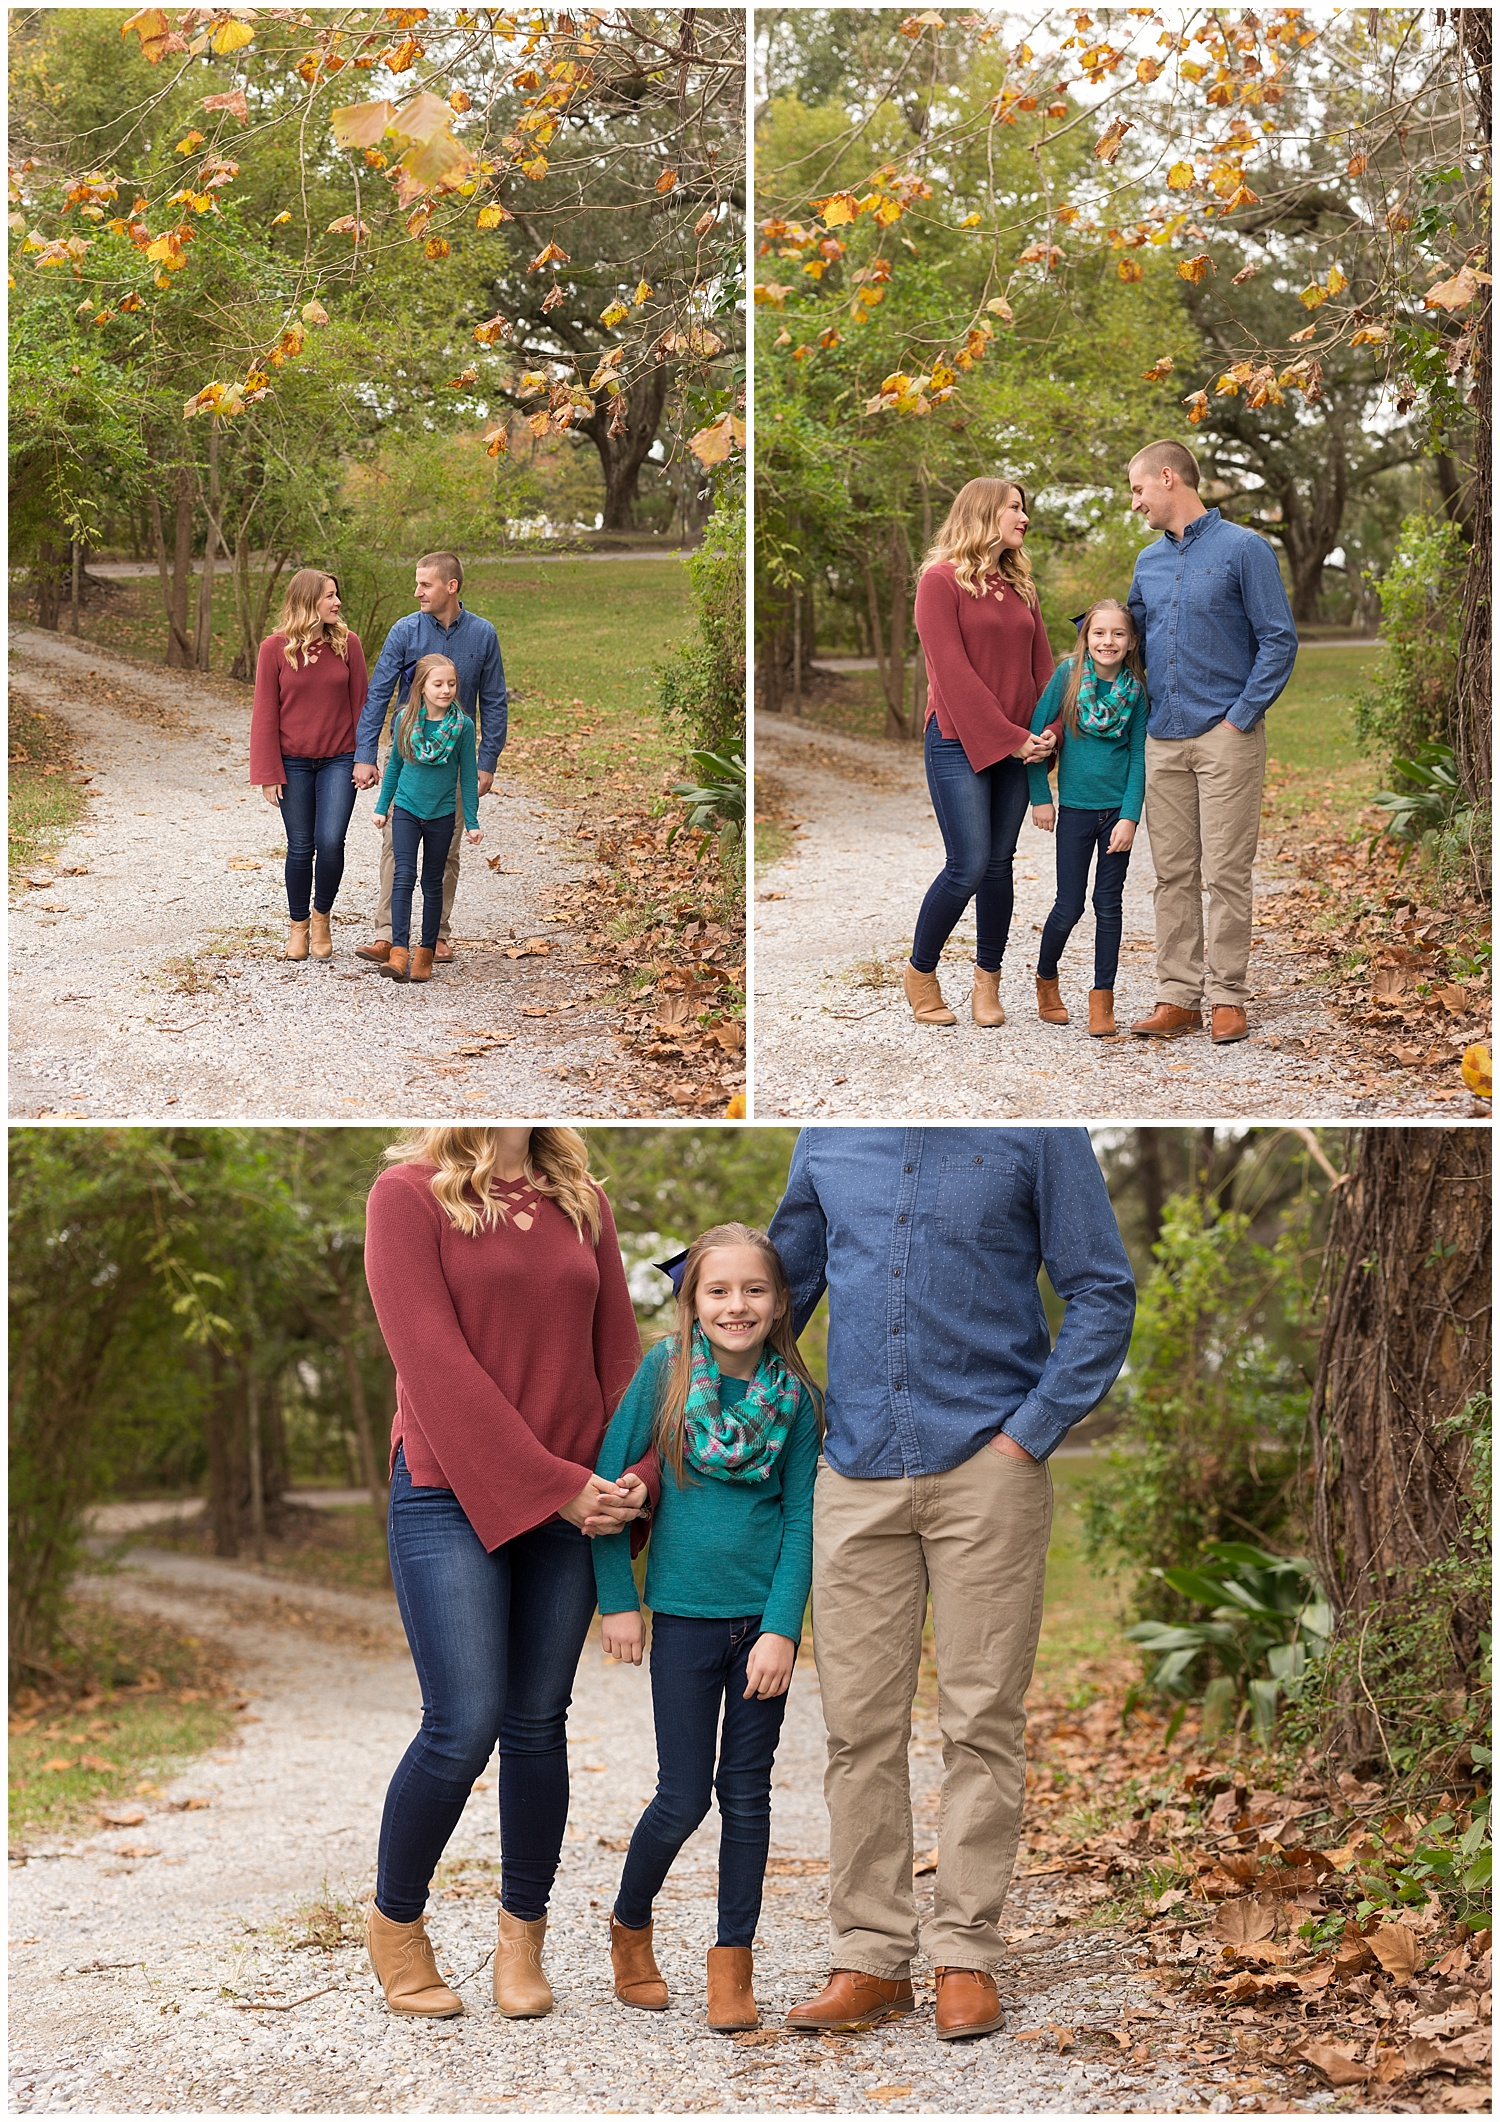 Ocean Springs family photographer - outdoor family photos on Mississippi Gulf Coast